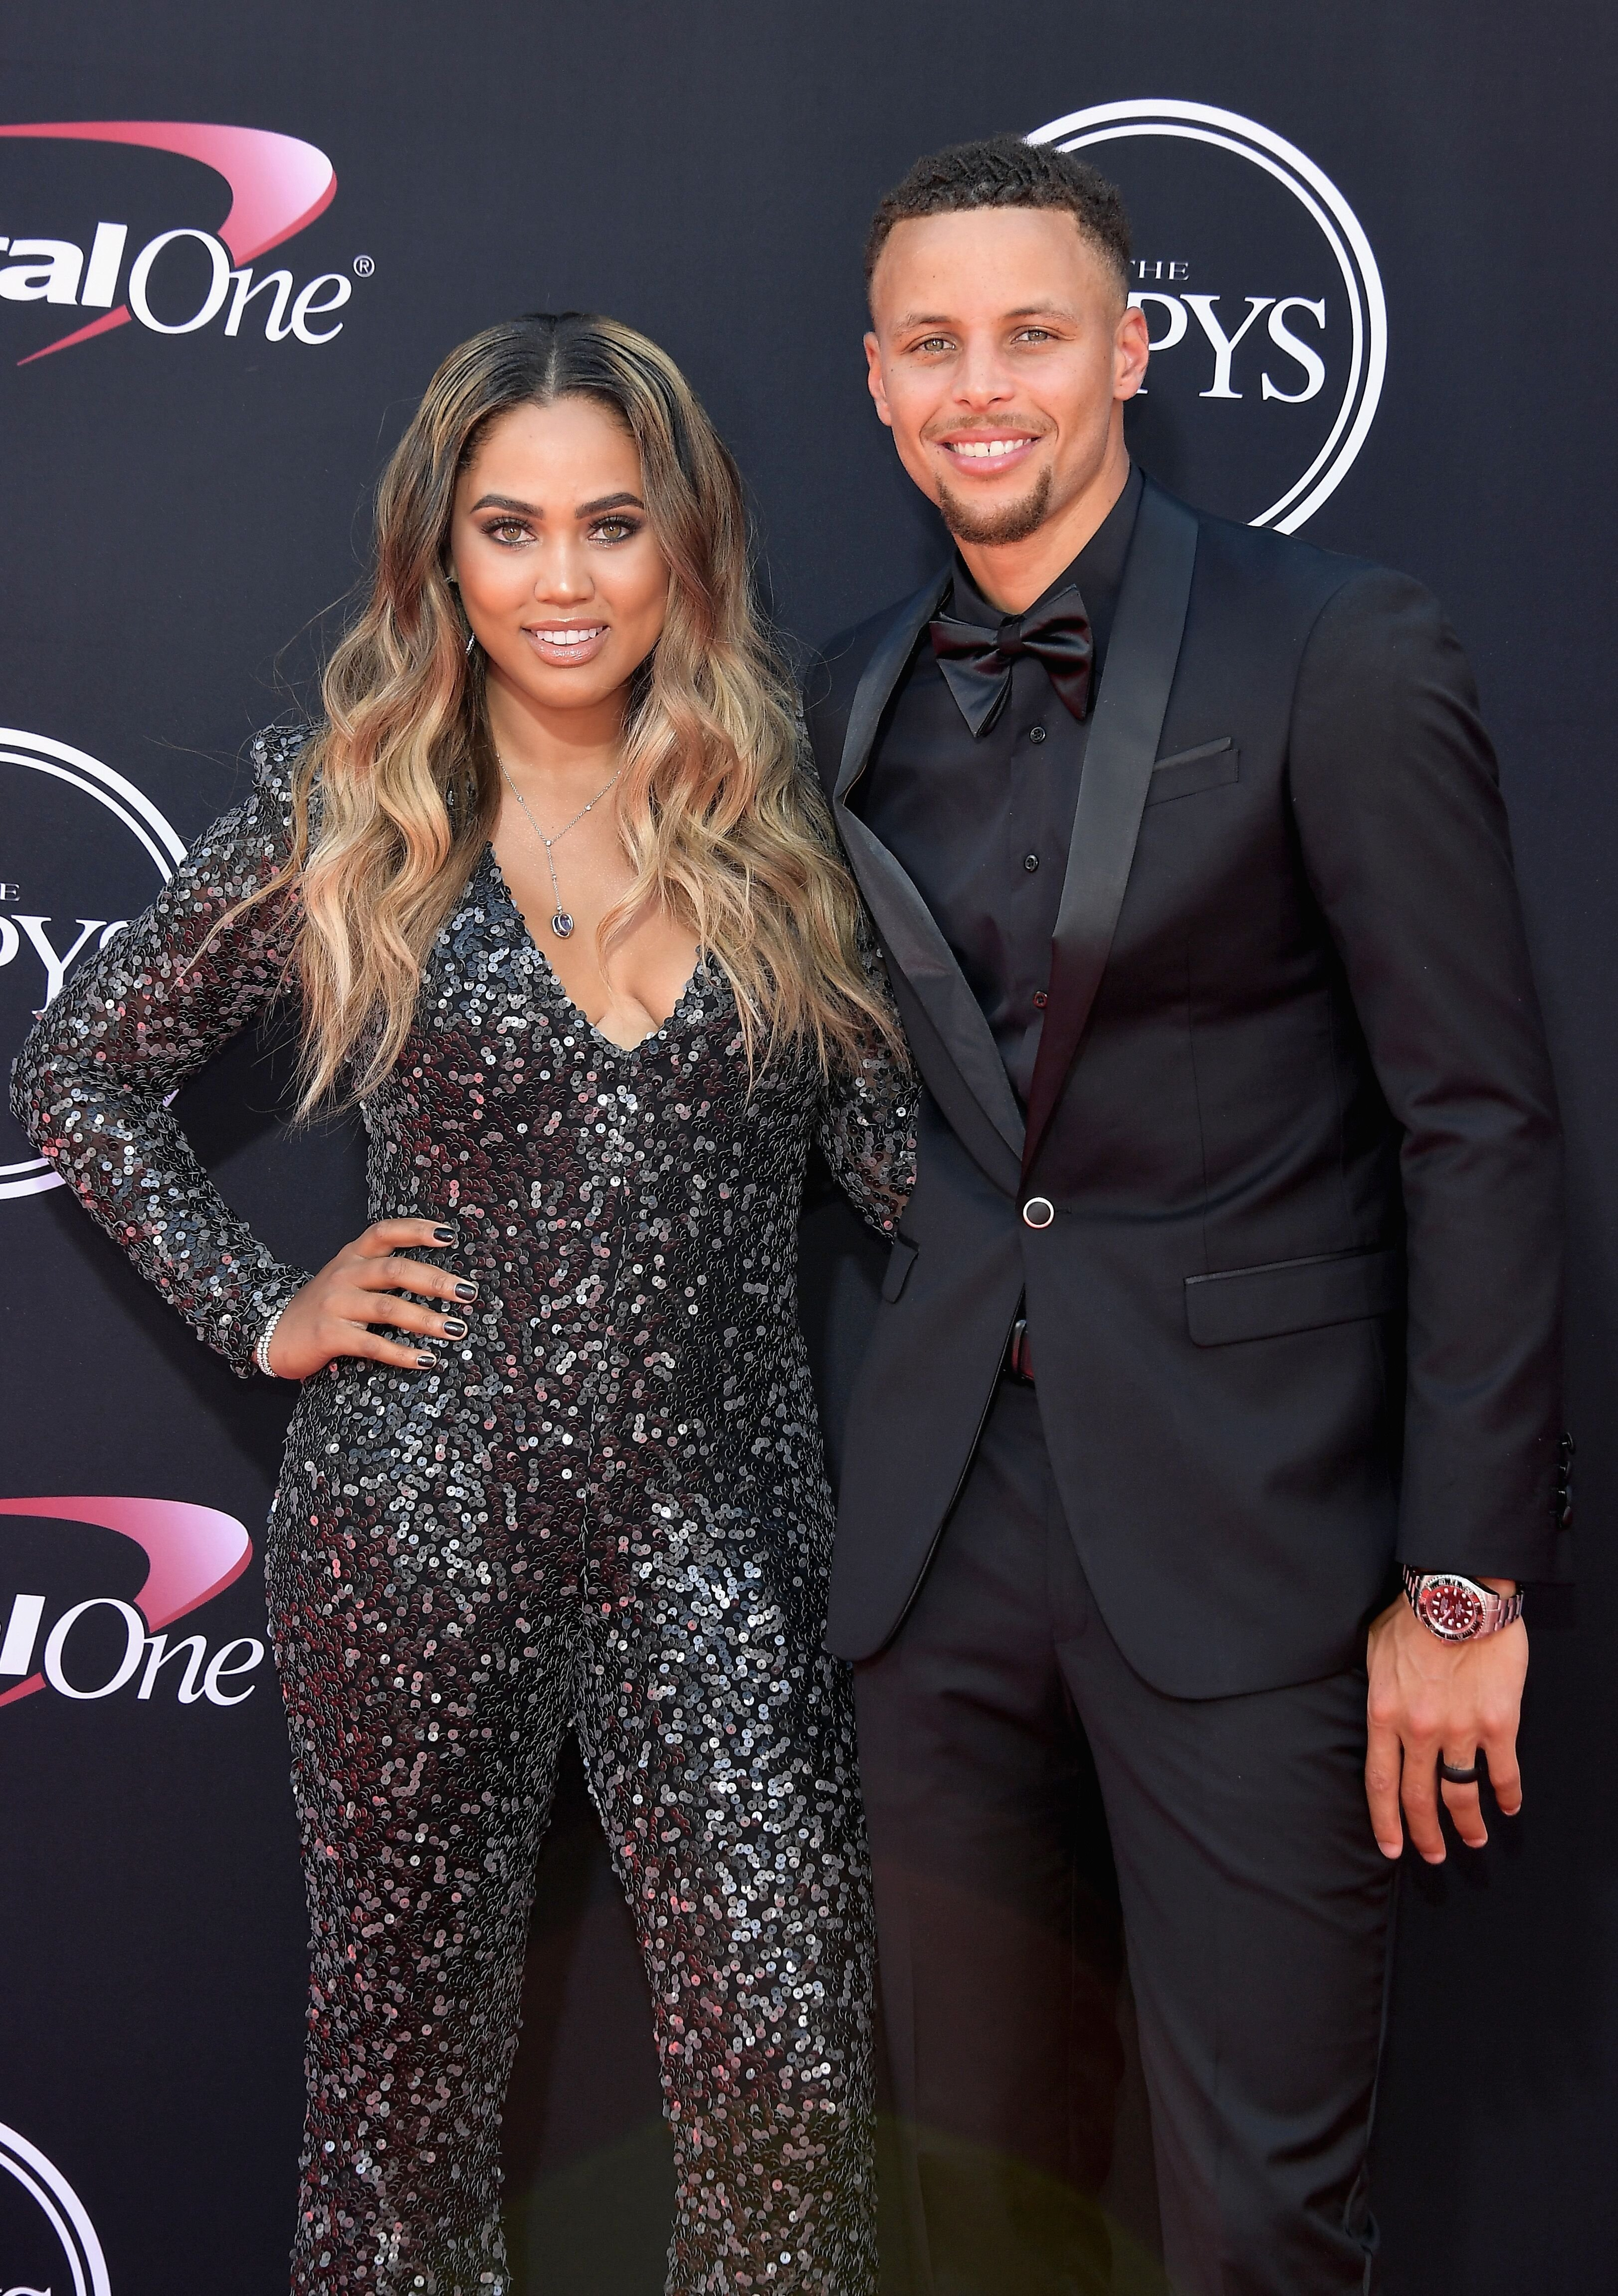 Ayesha and Stephen Curry at The ESPYS at Microsoft Theater on July 12, 2017 in Los Angeles, California.   Source: Getty Images